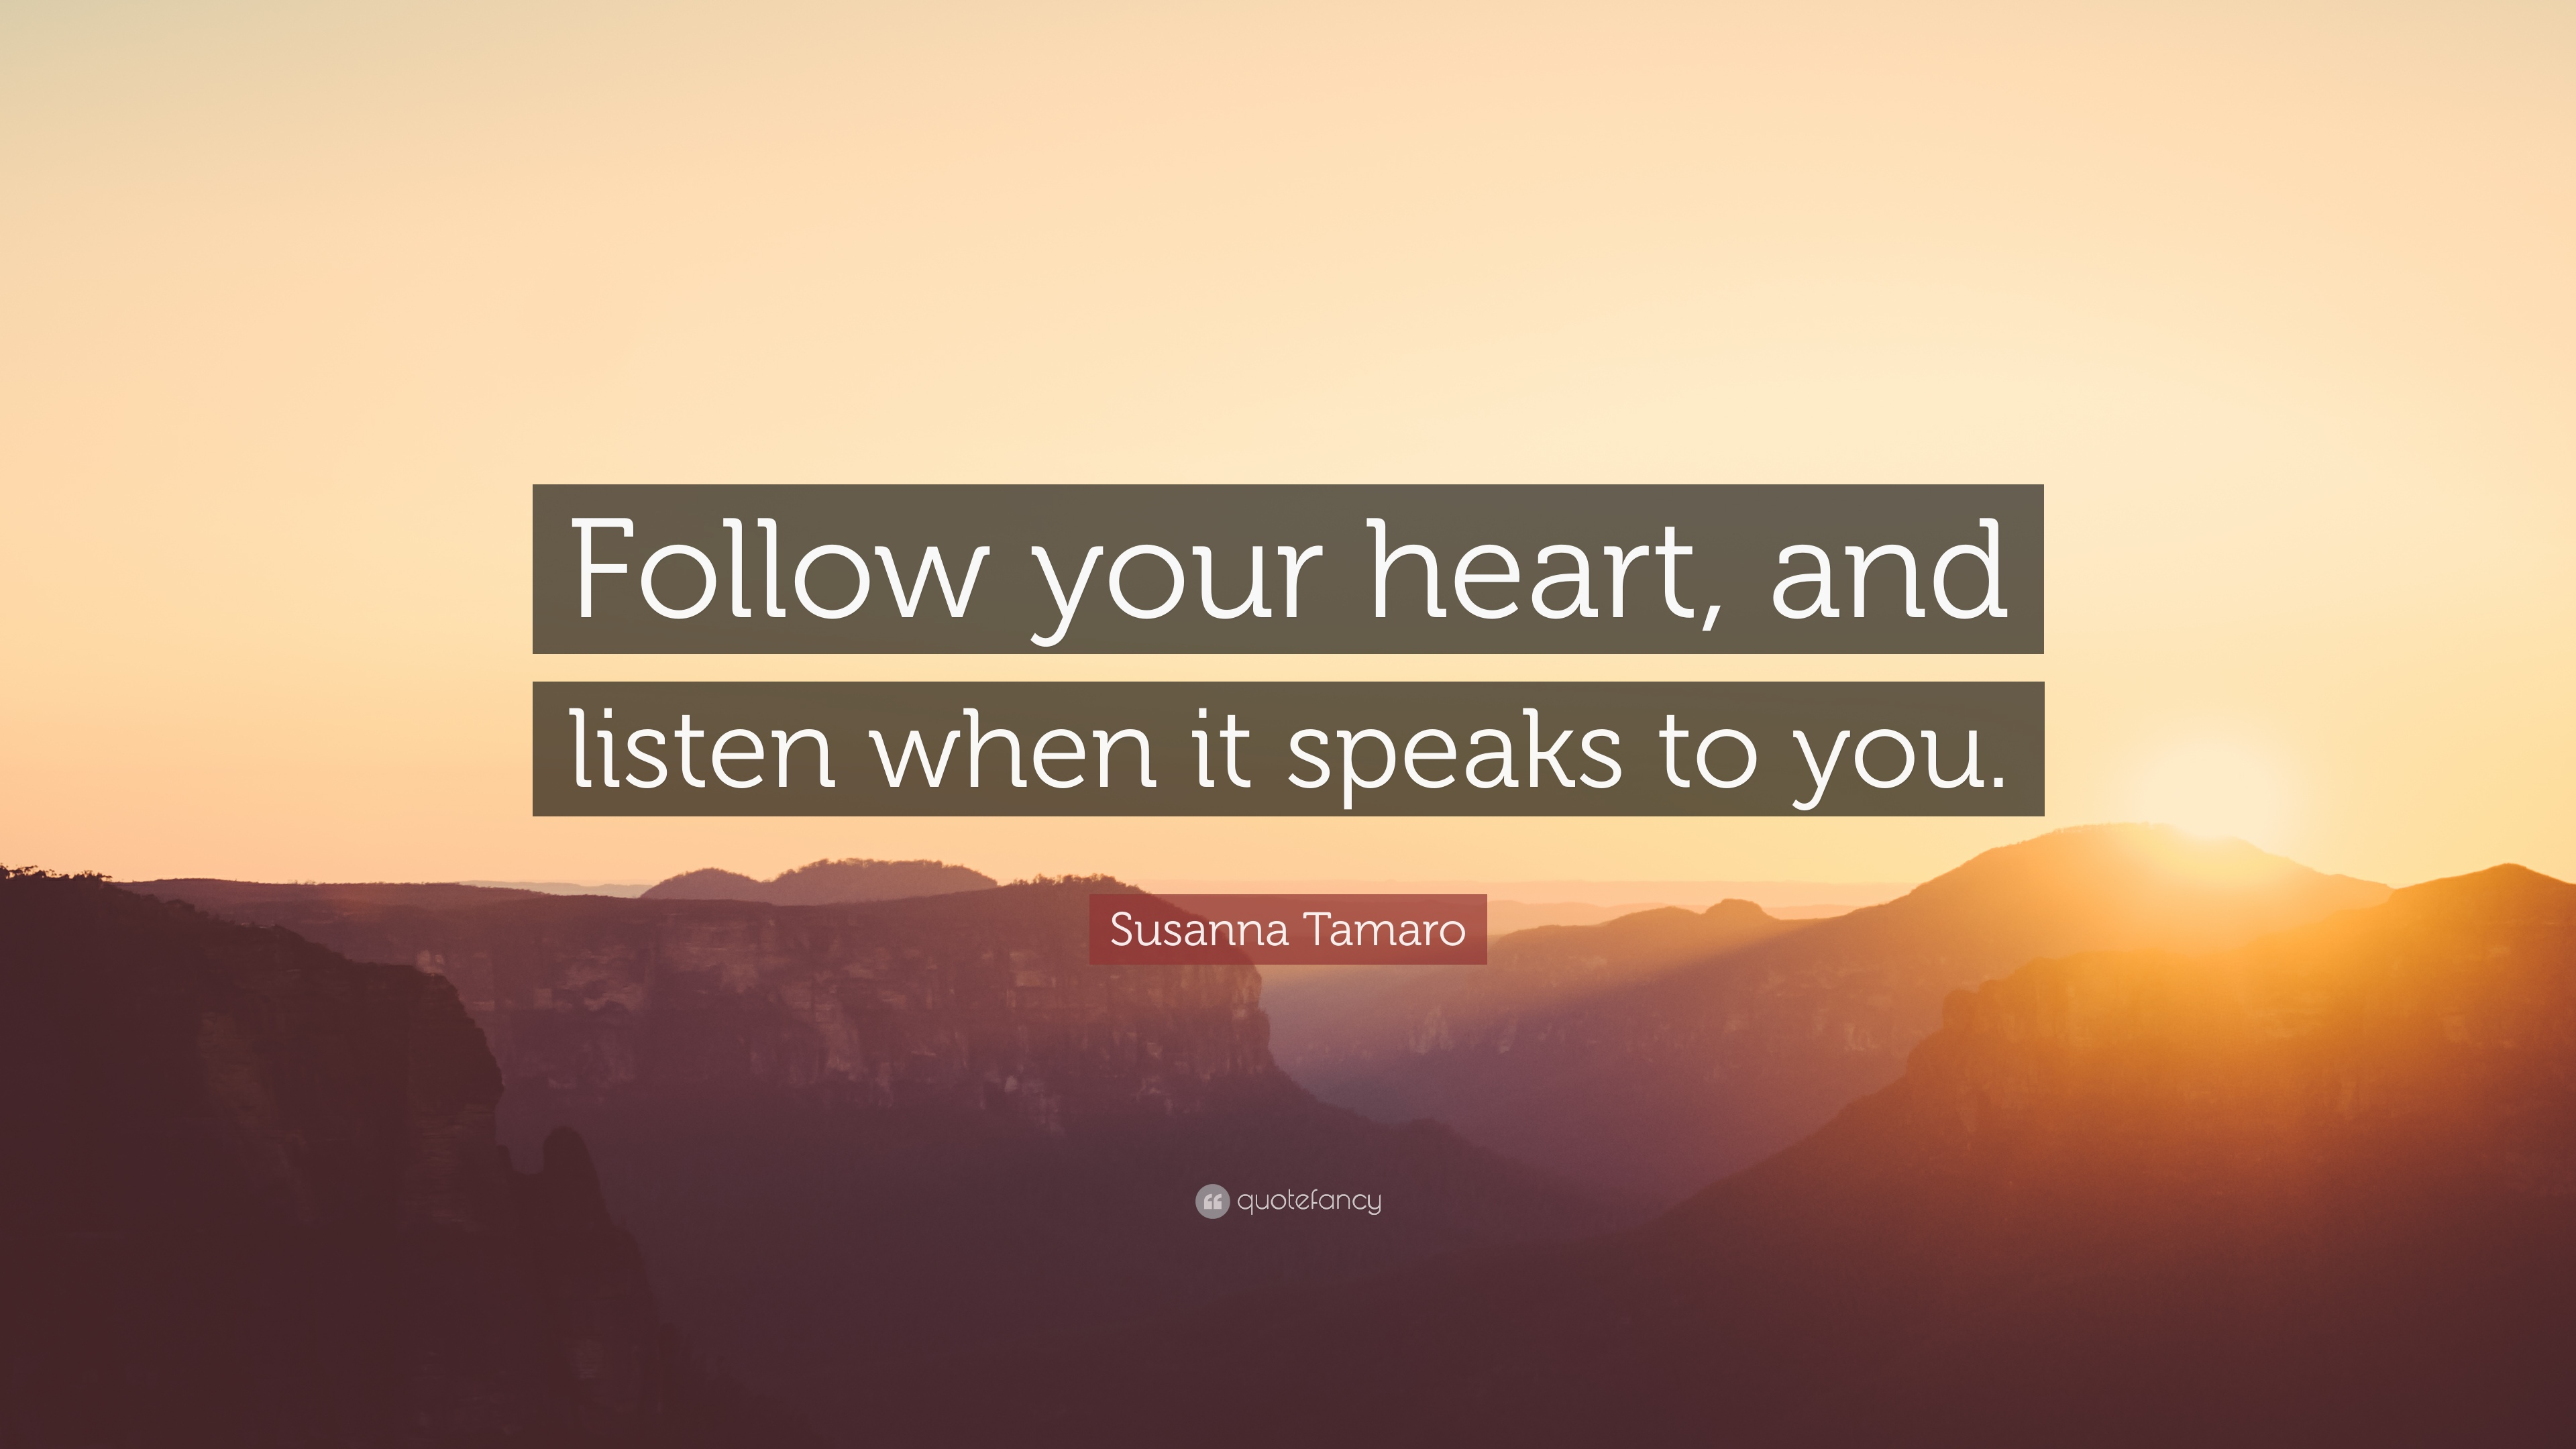 Susanna tamaro quote follow your heart and listen when it speaks susanna tamaro quote follow your heart and listen when it speaks to you thecheapjerseys Image collections